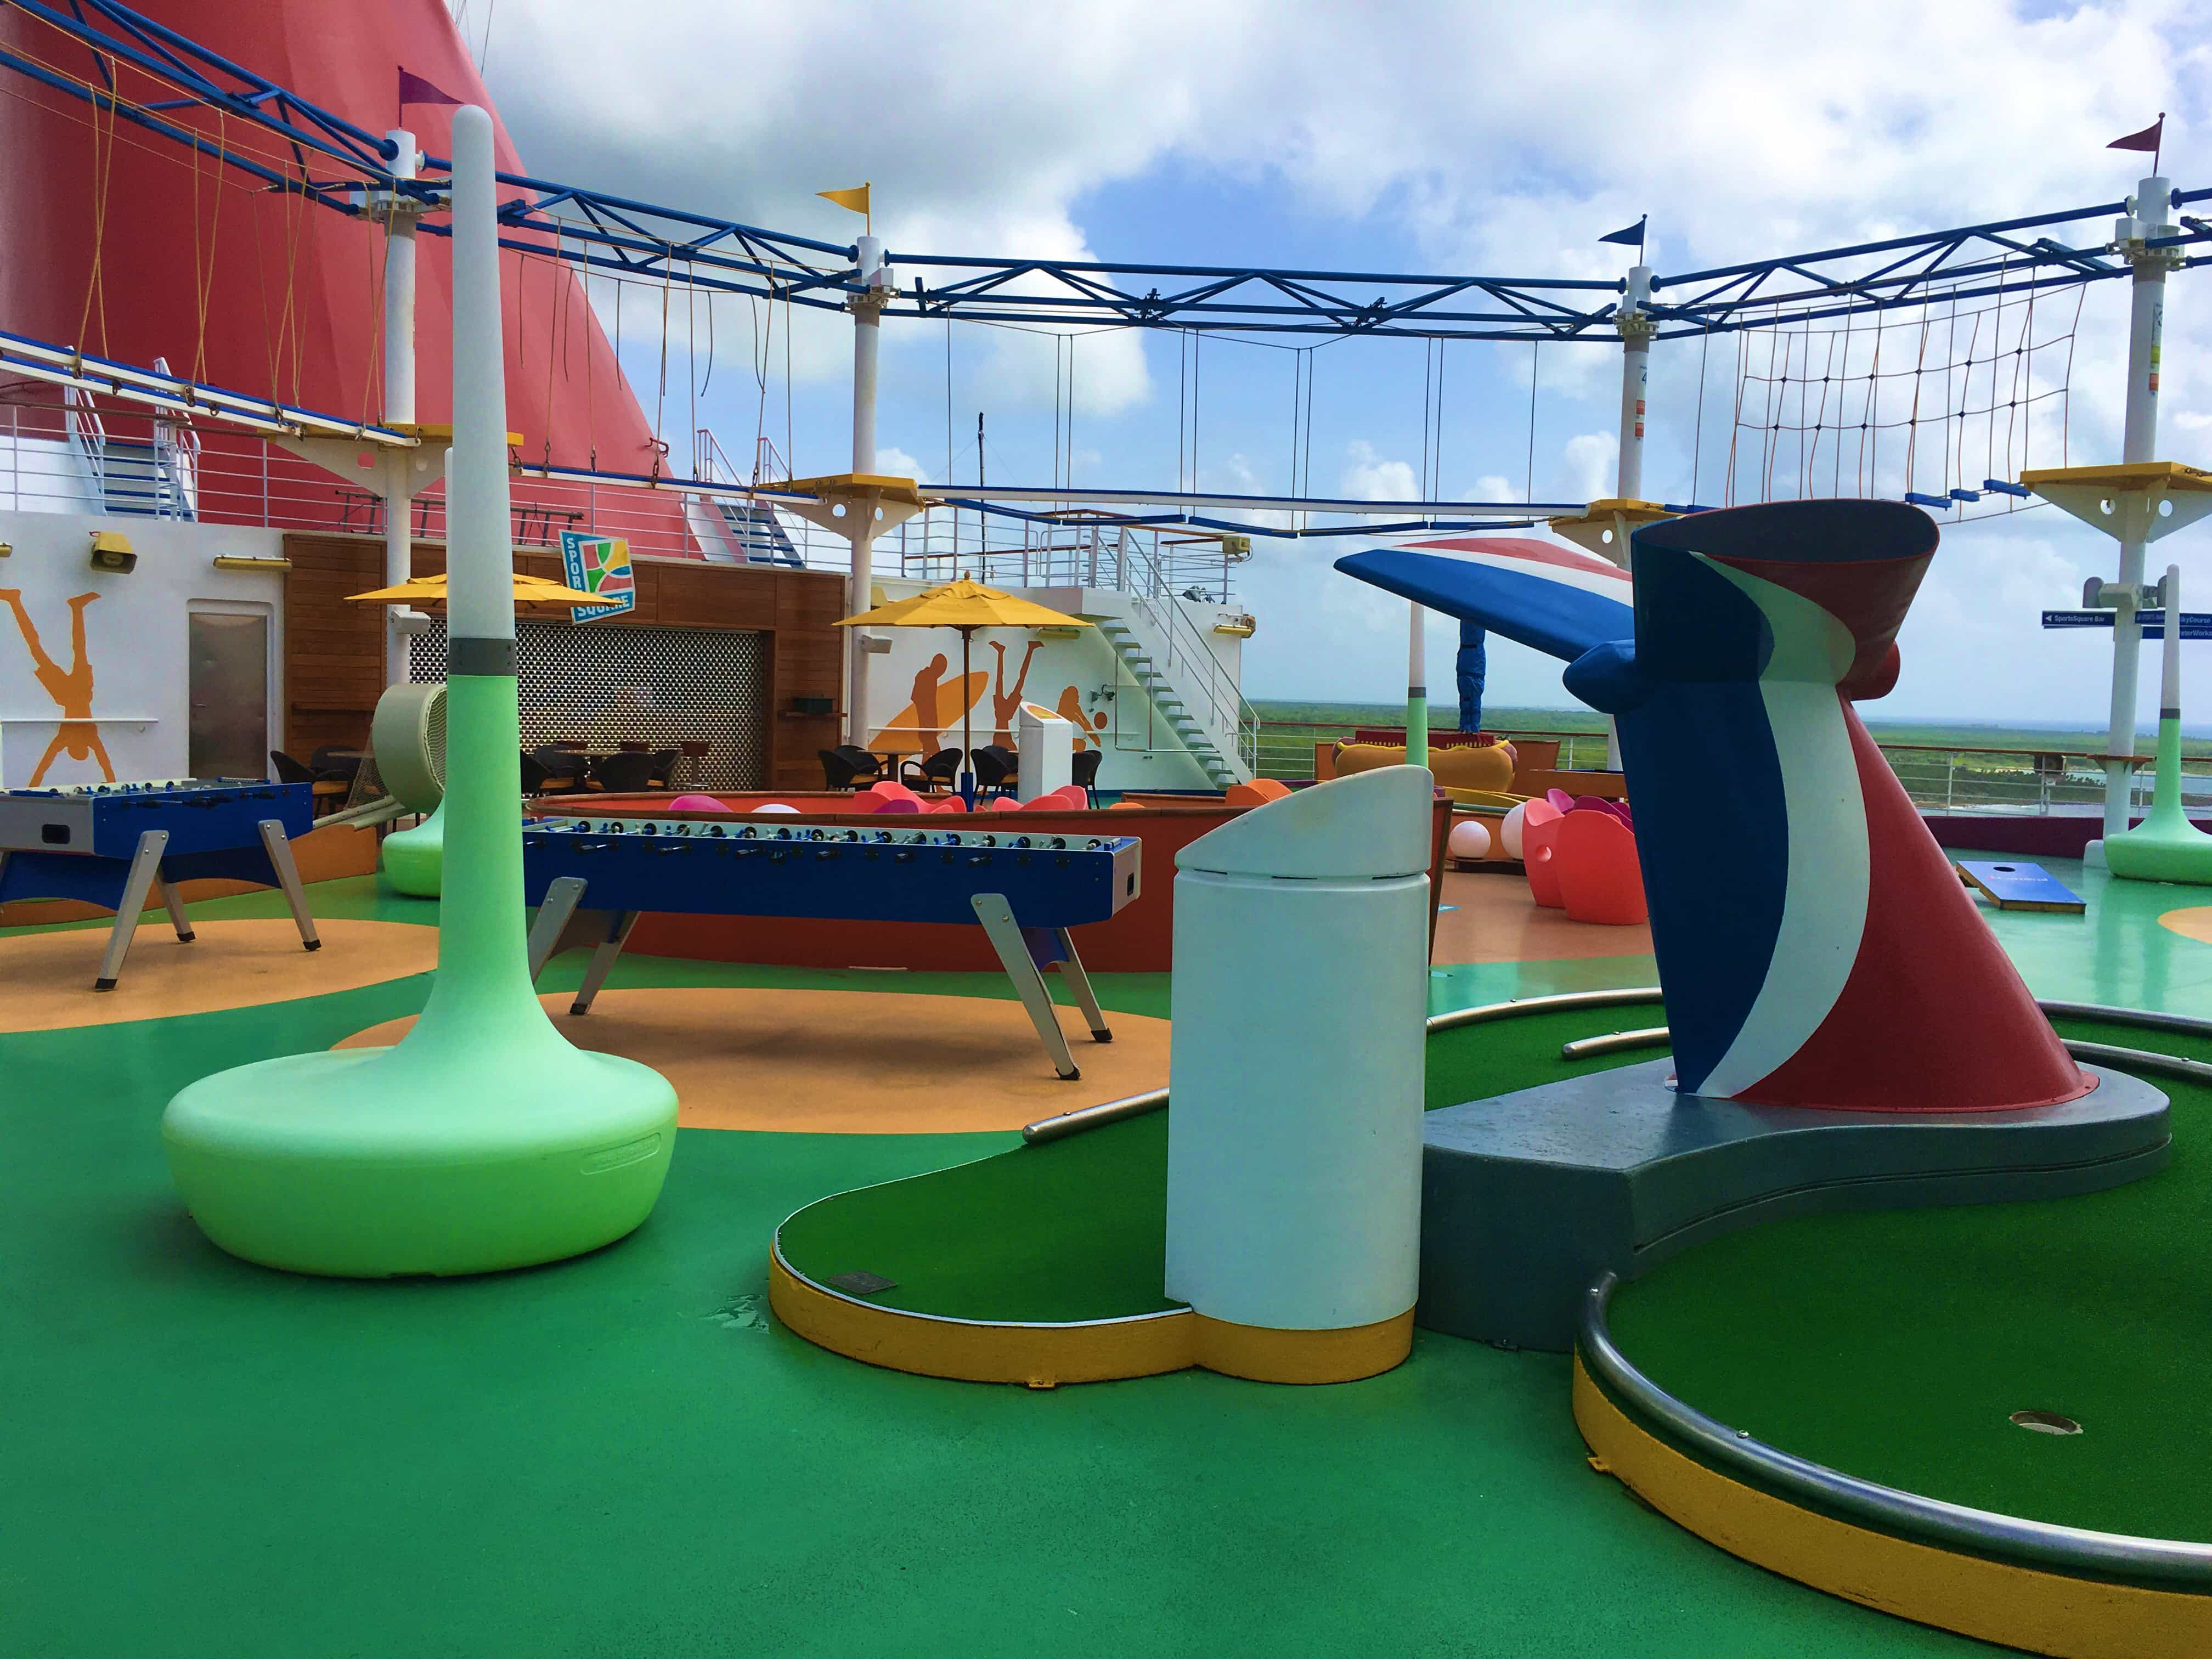 9 Reasons Cruising the Carnival Magic Good for Adults - fun on the sport courts